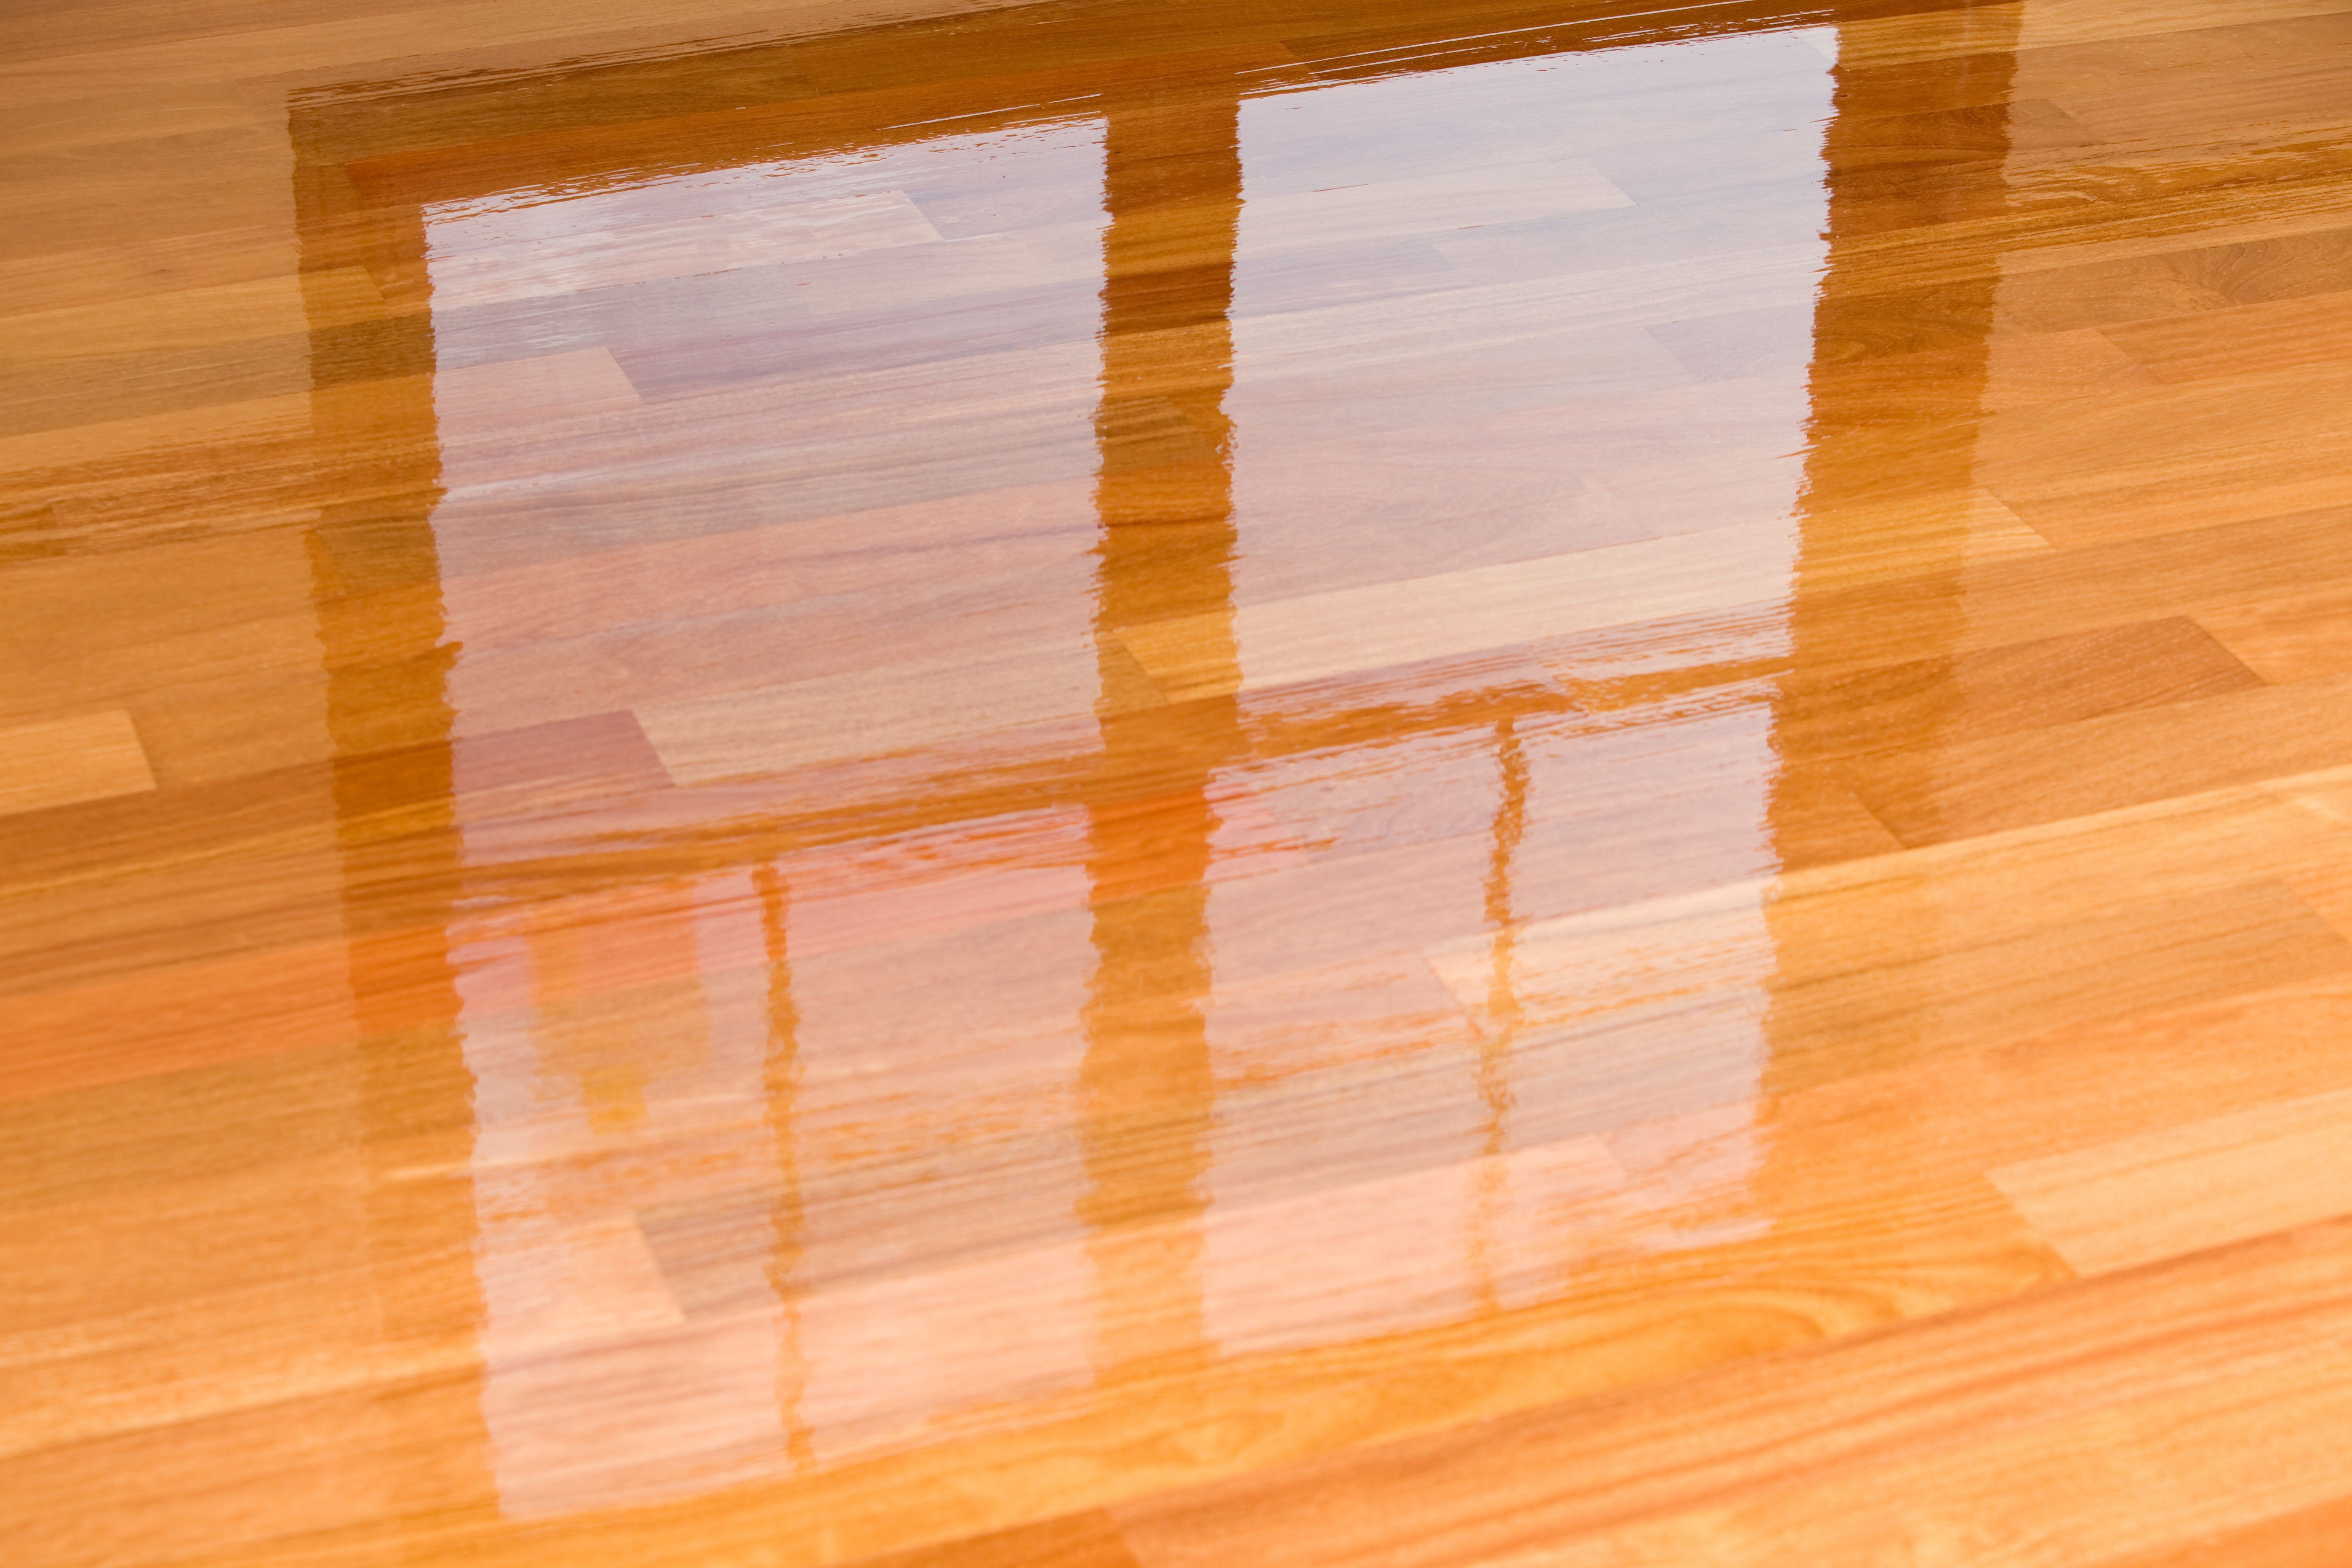 hardwood floor underlayment options of guide to laminate flooring water and damage repair intended for wet polyurethane on new hardwood floor with window reflection 183846705 582e34da3df78c6f6a403968